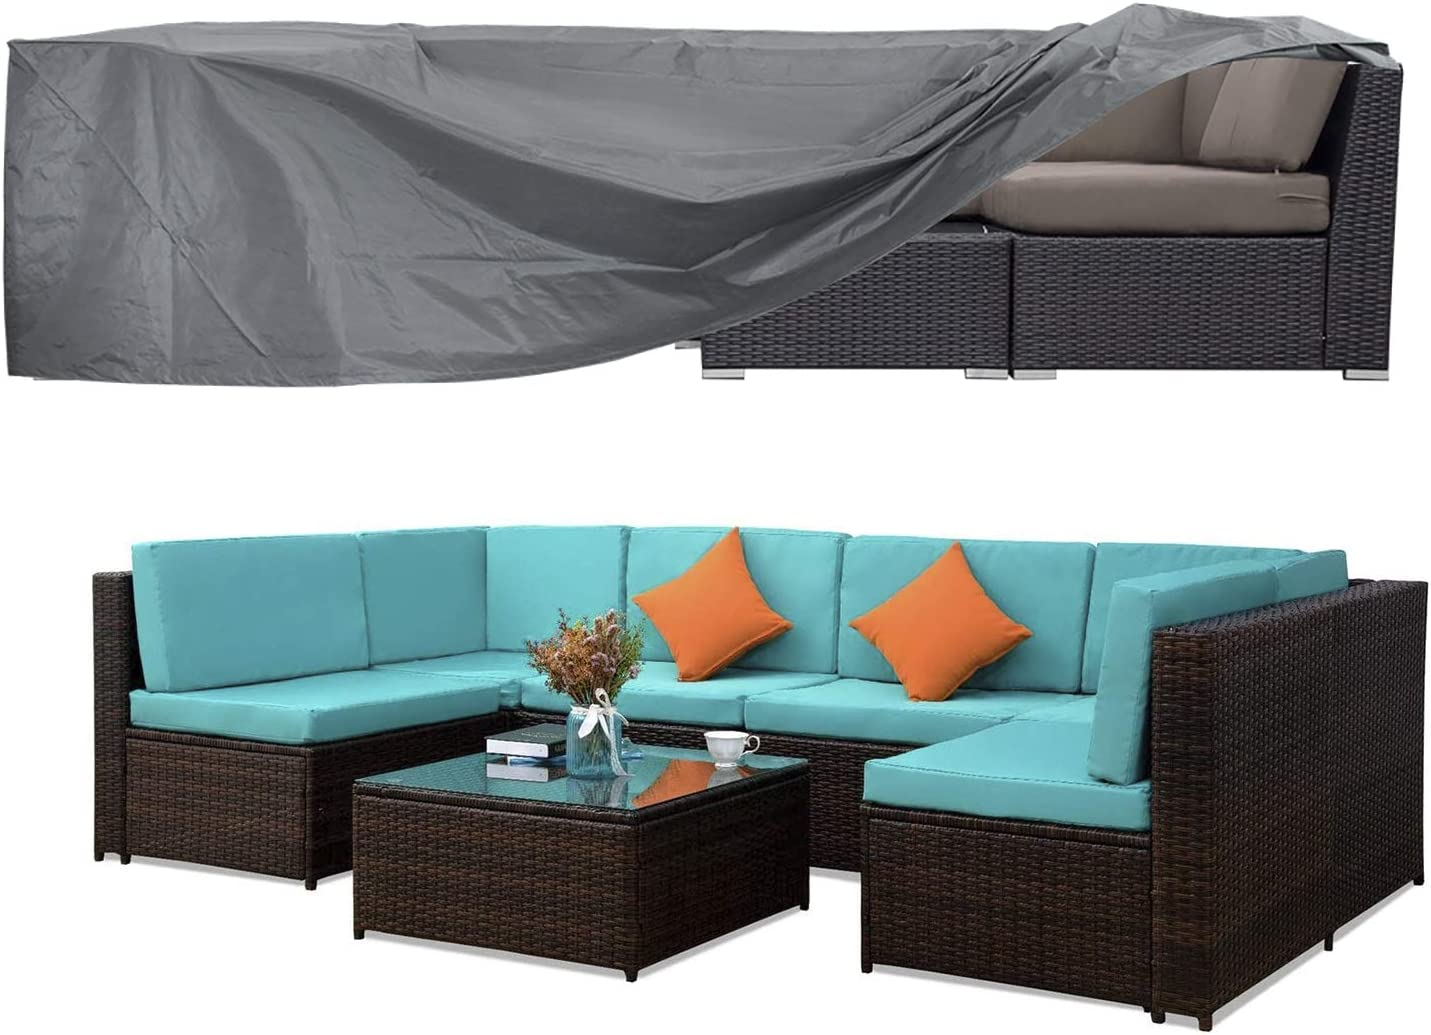 Patio Furniture Set Cover Outside Sectional Sofa Set Covers Outdoor Table and Chair Set Covers Water Resistant Heavy Duty 128